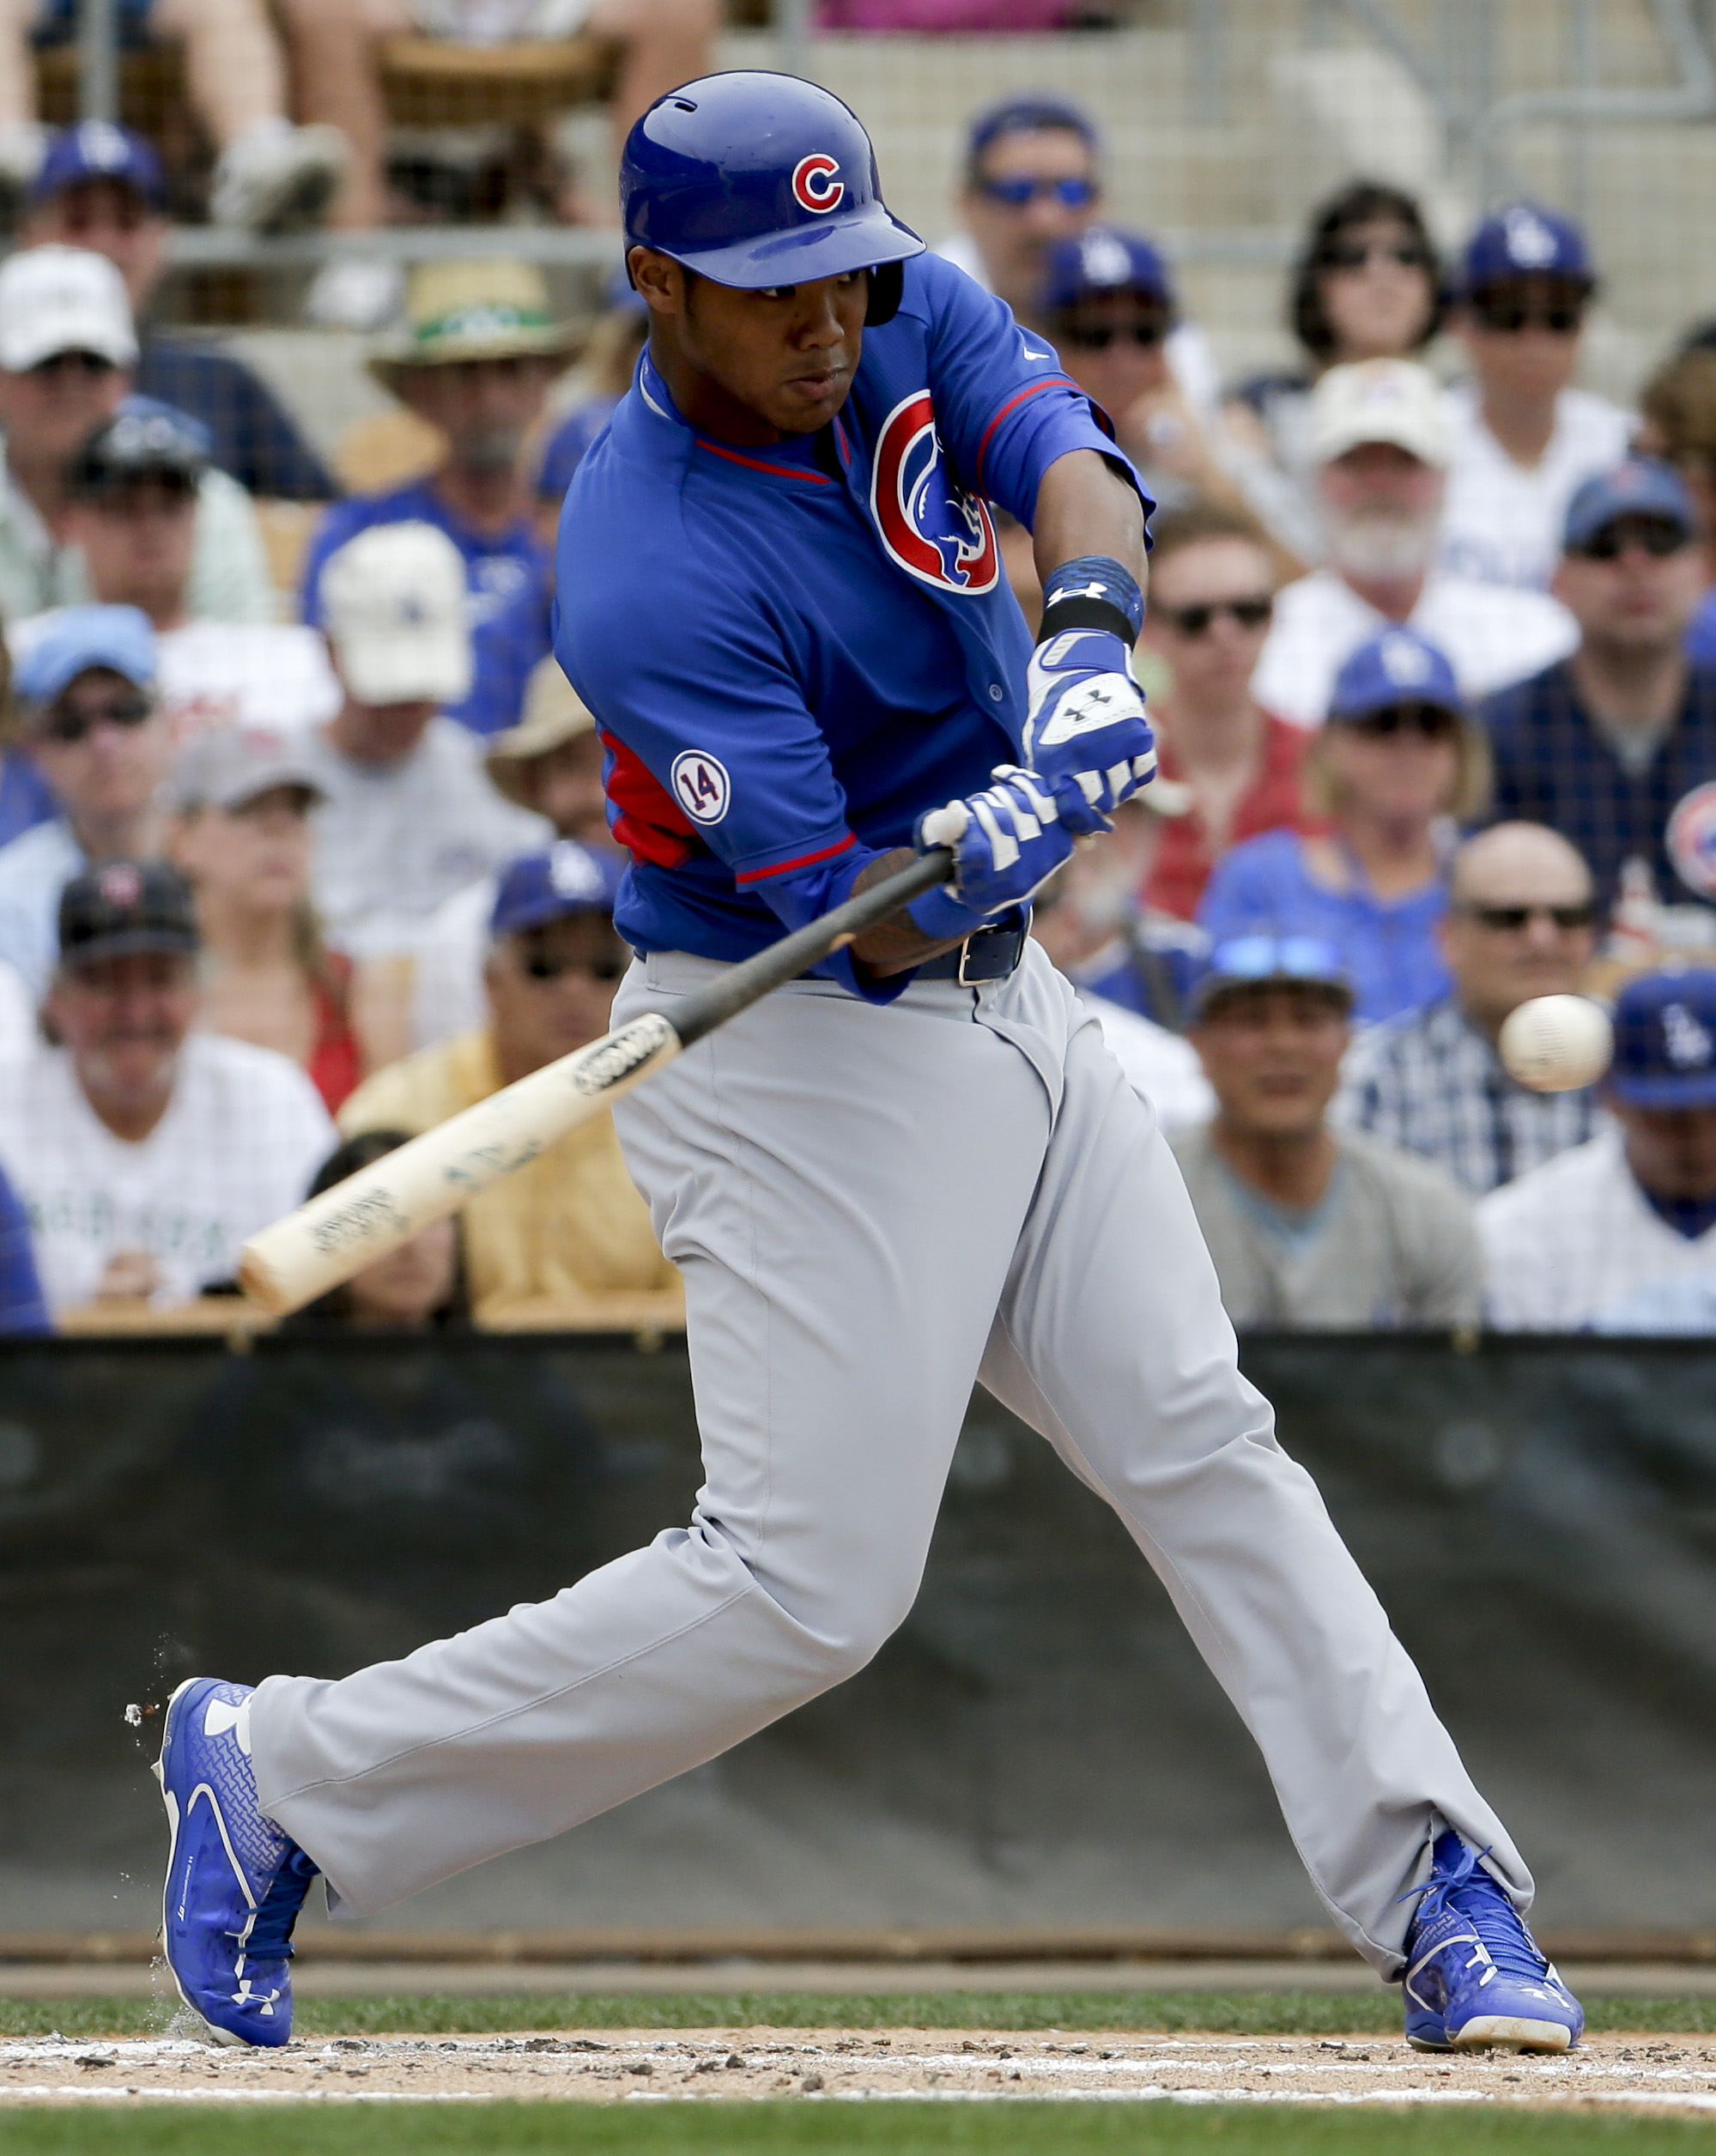 Chicago Cubs' Addison Russell bats during a spring training baseball exhibition game against the Los Angeles Dodgers in Glendale, Ariz., on Wednesday, March 18, 2015. (AP Photo/Chris Carlson)